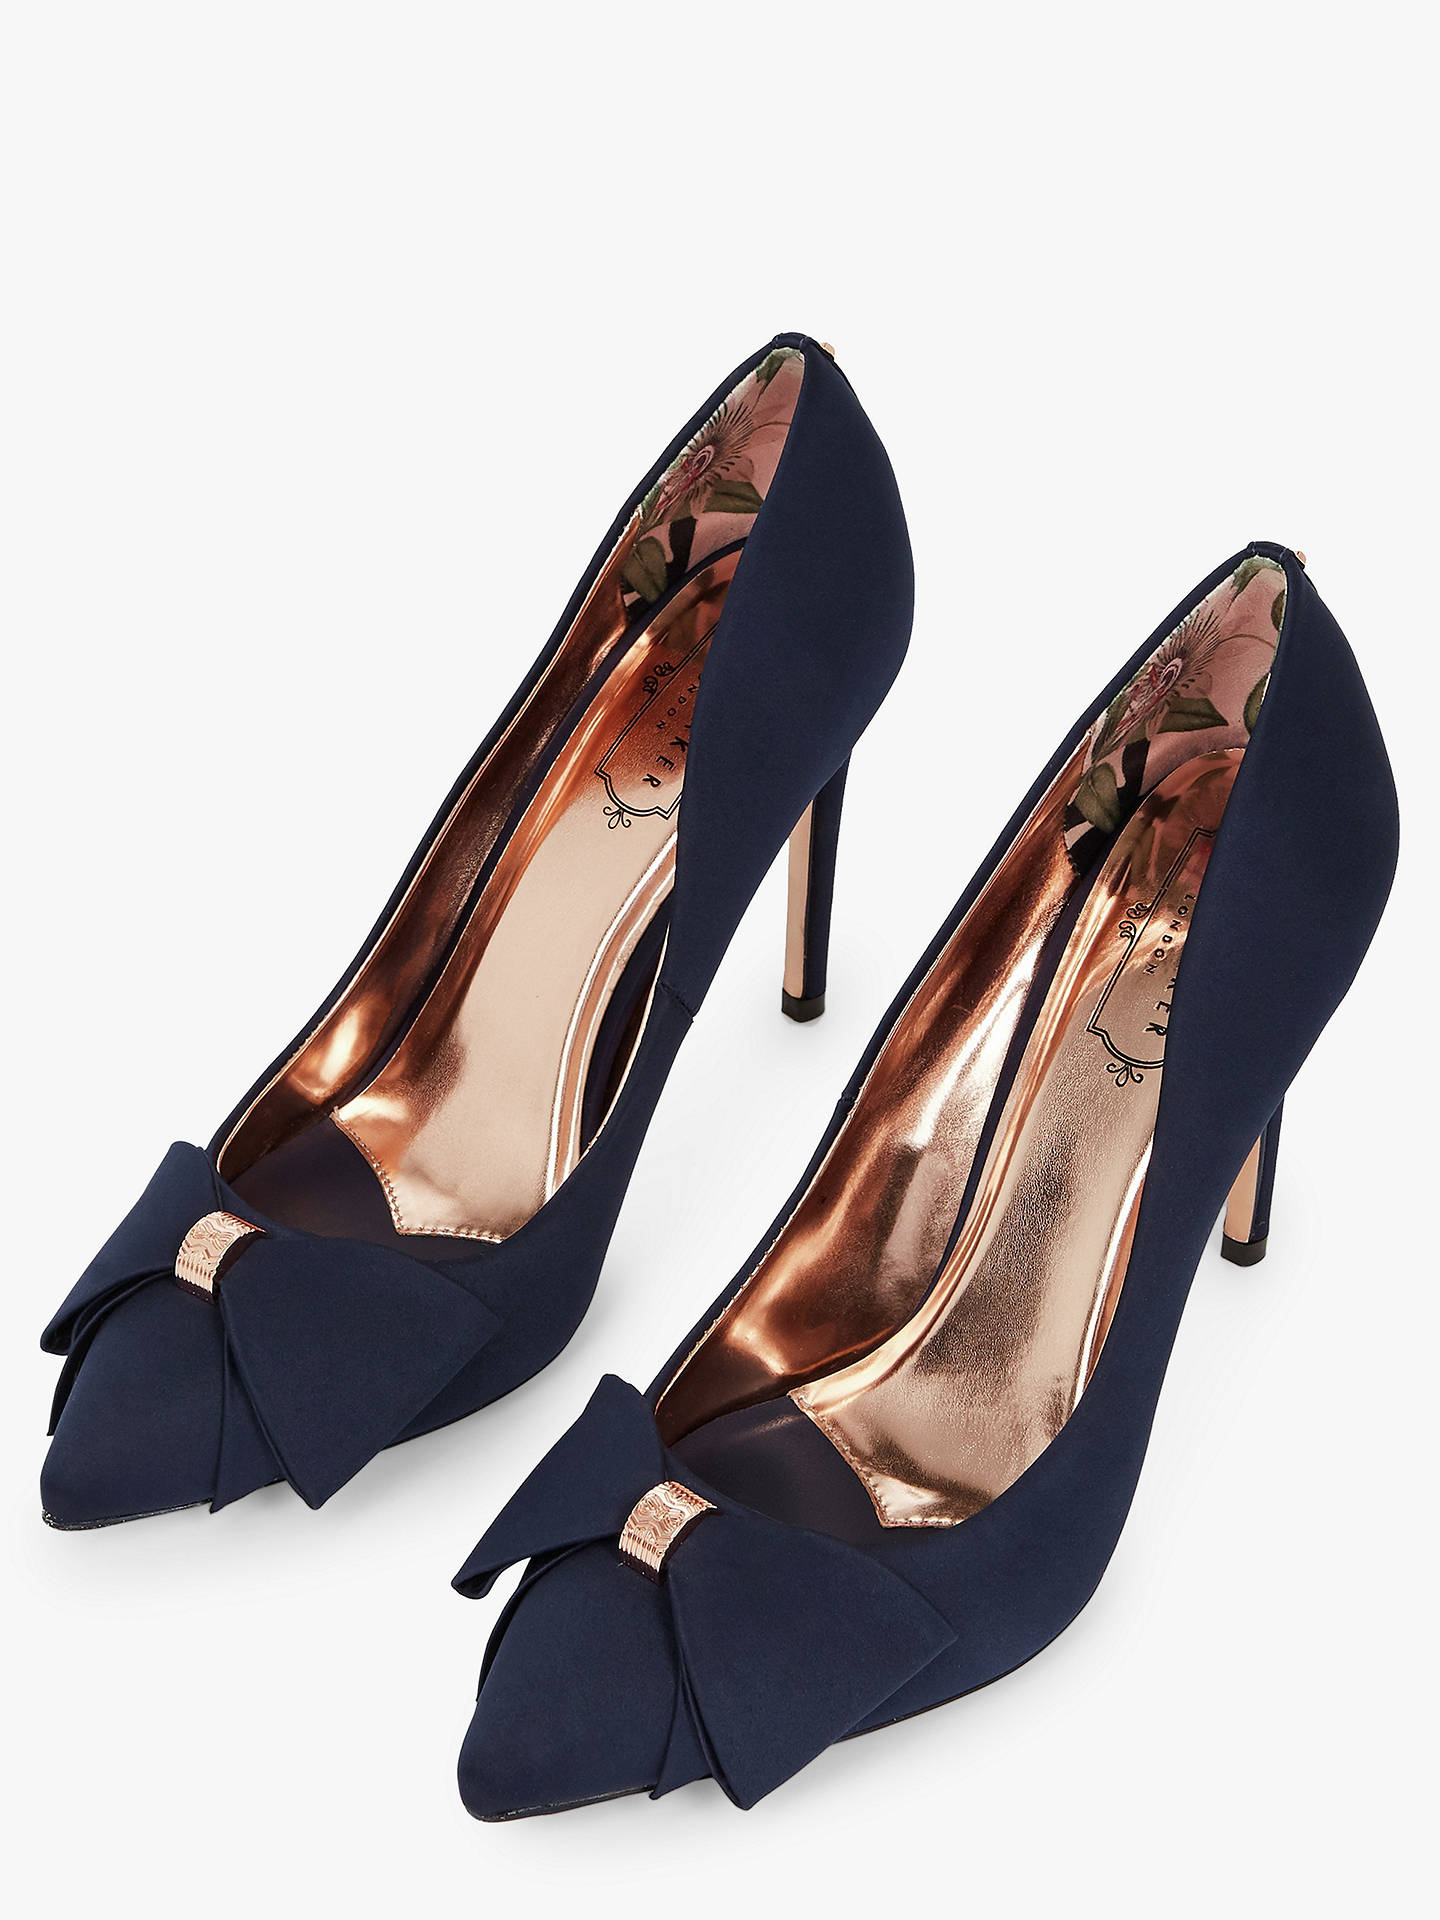 91ff9d754 ... Buy Ted Baker Asellys Stiletto Heel Bow Court Shoes